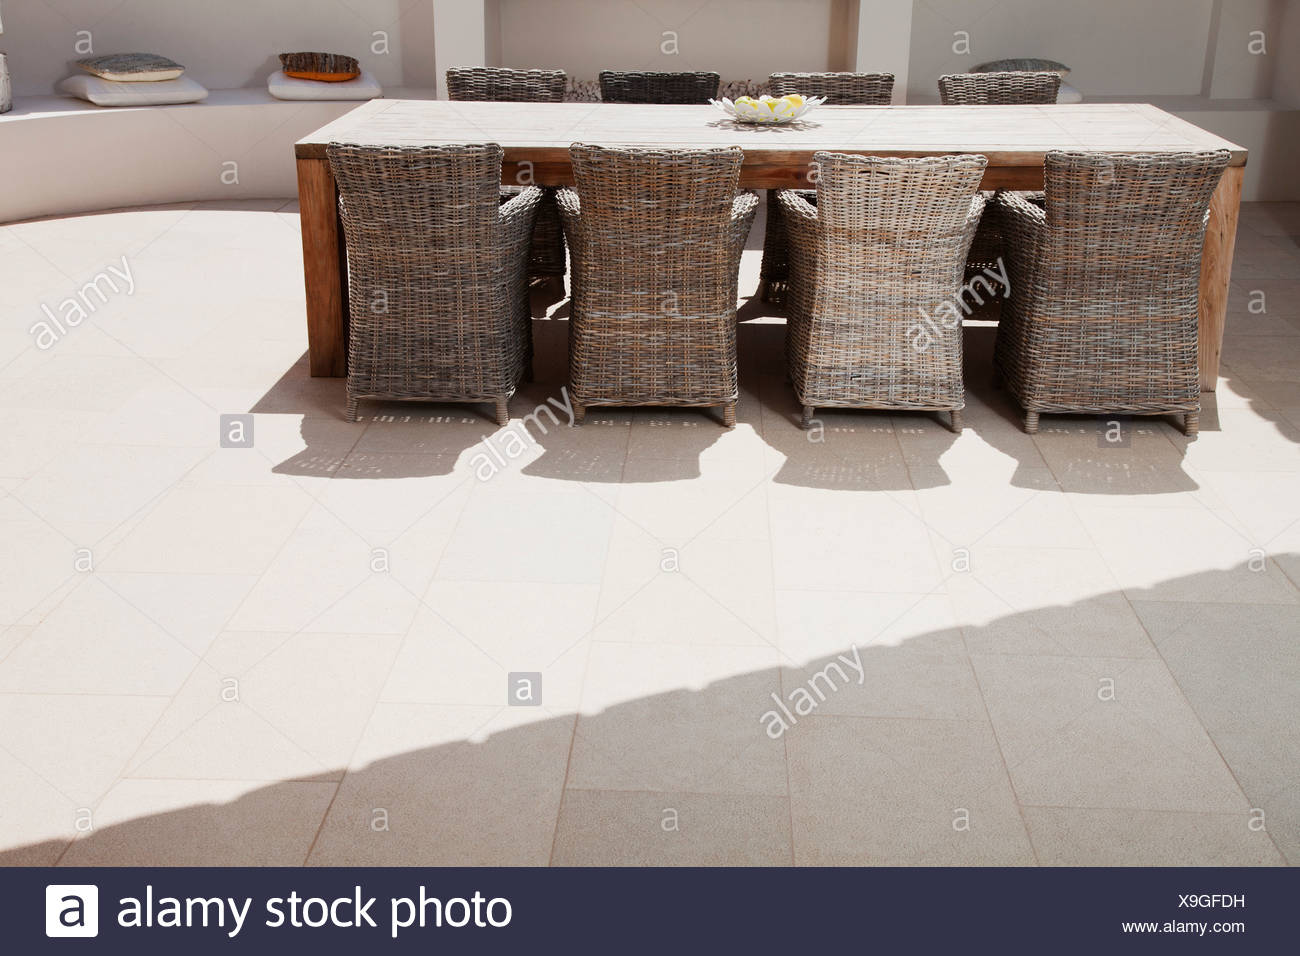 Table and chairs on patio - Stock Image